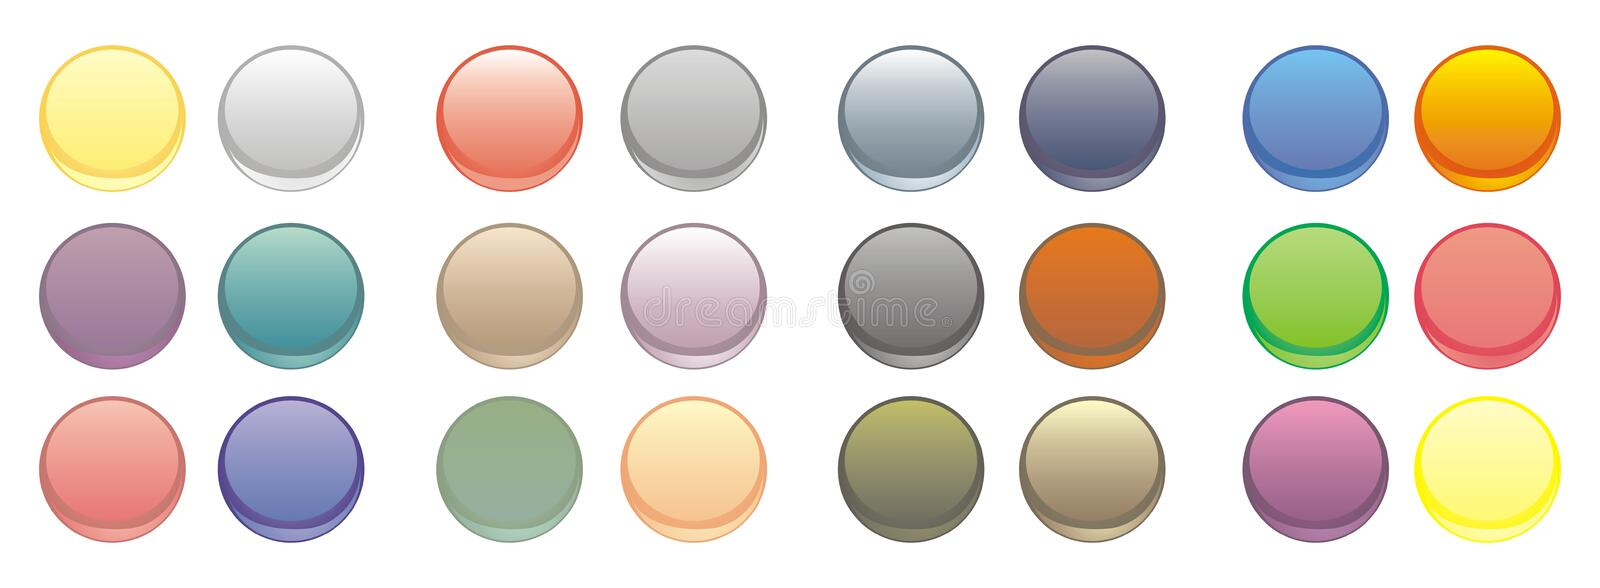 Set of 24 vector web buttons